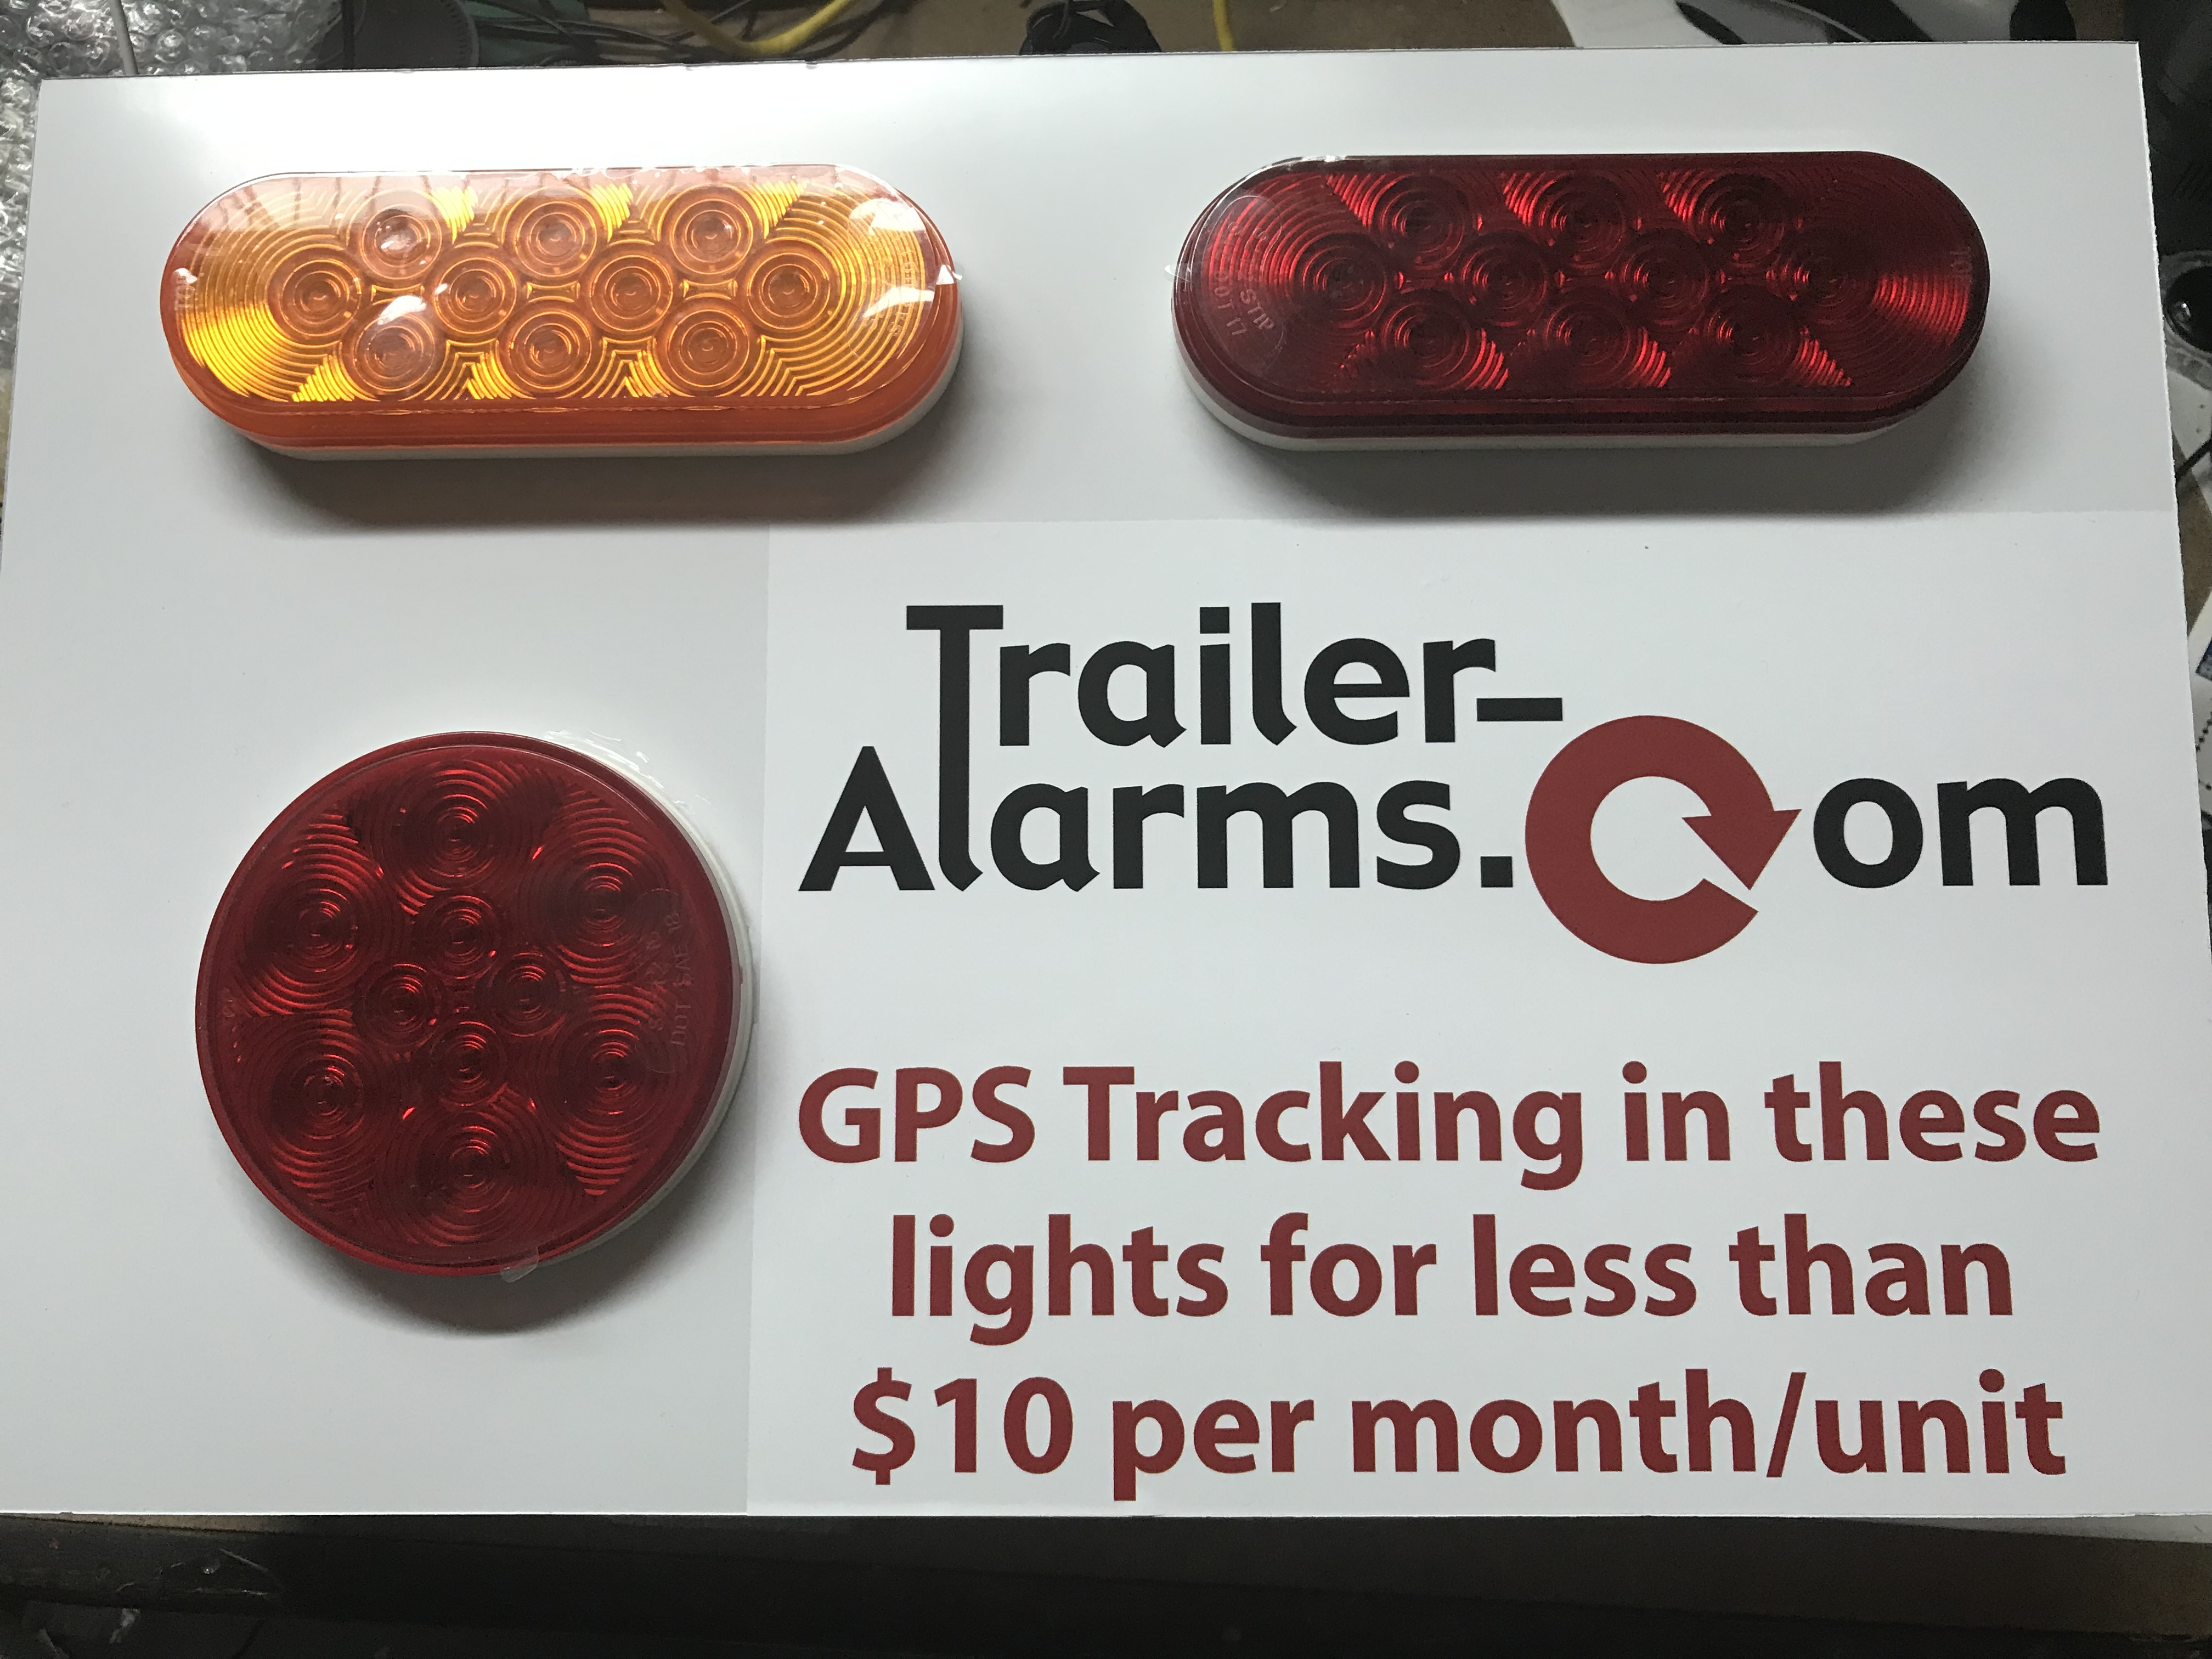 GPS tracking in tail light hidden in plain sight